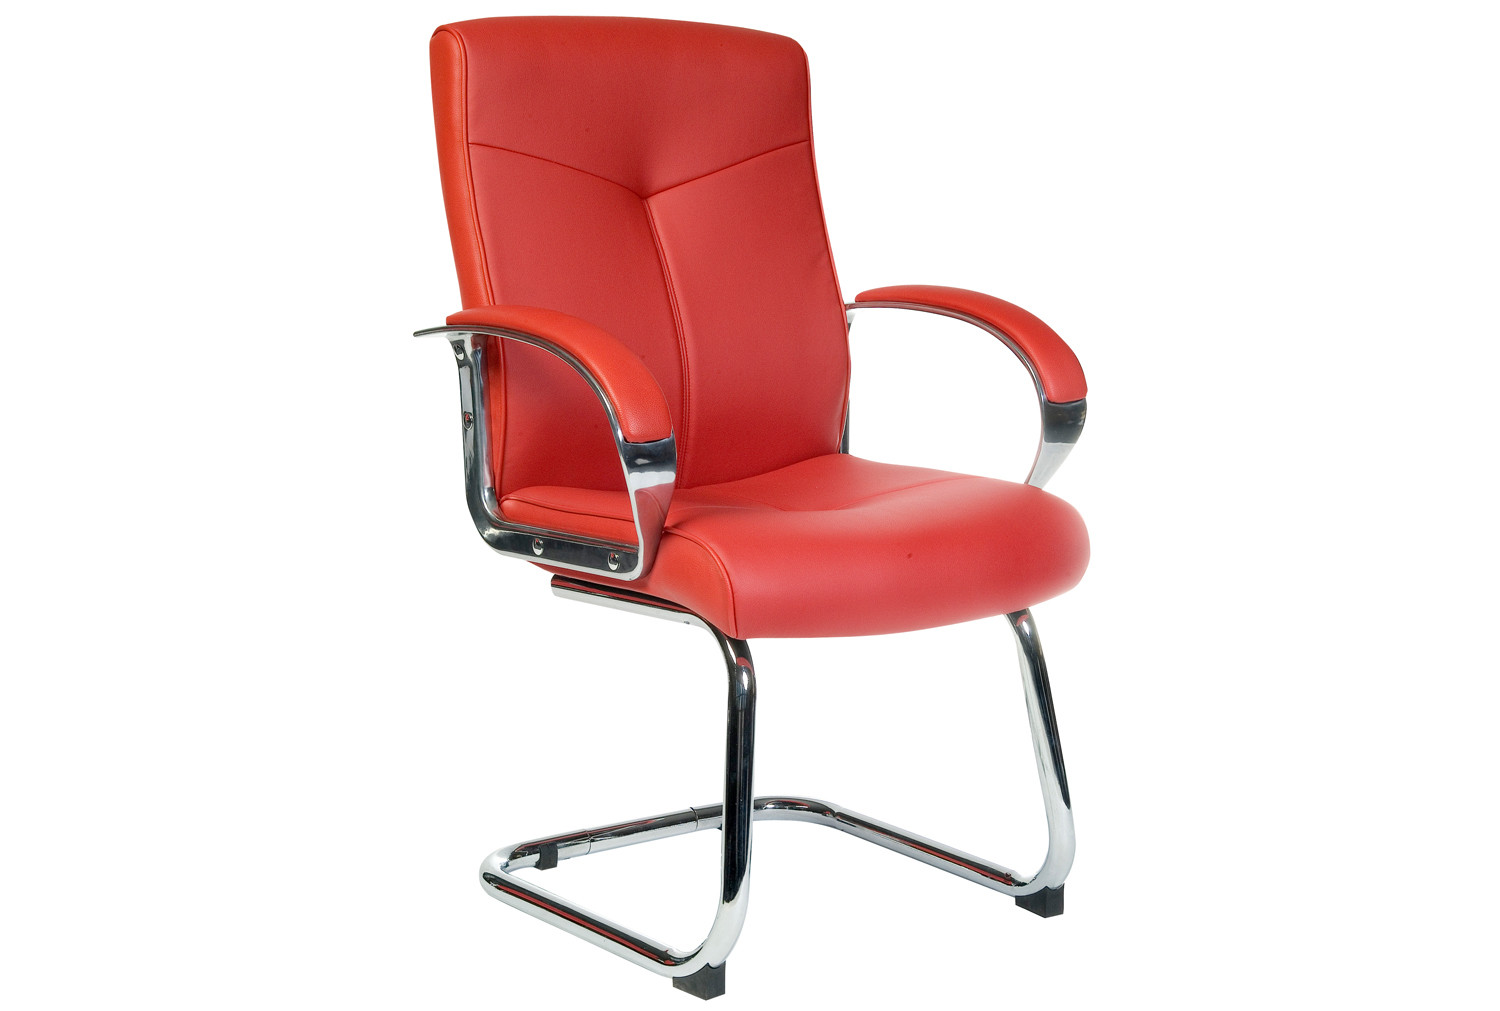 Hoxton Red Leather Visitors Reception Office Meeting Cantilever Office Chair